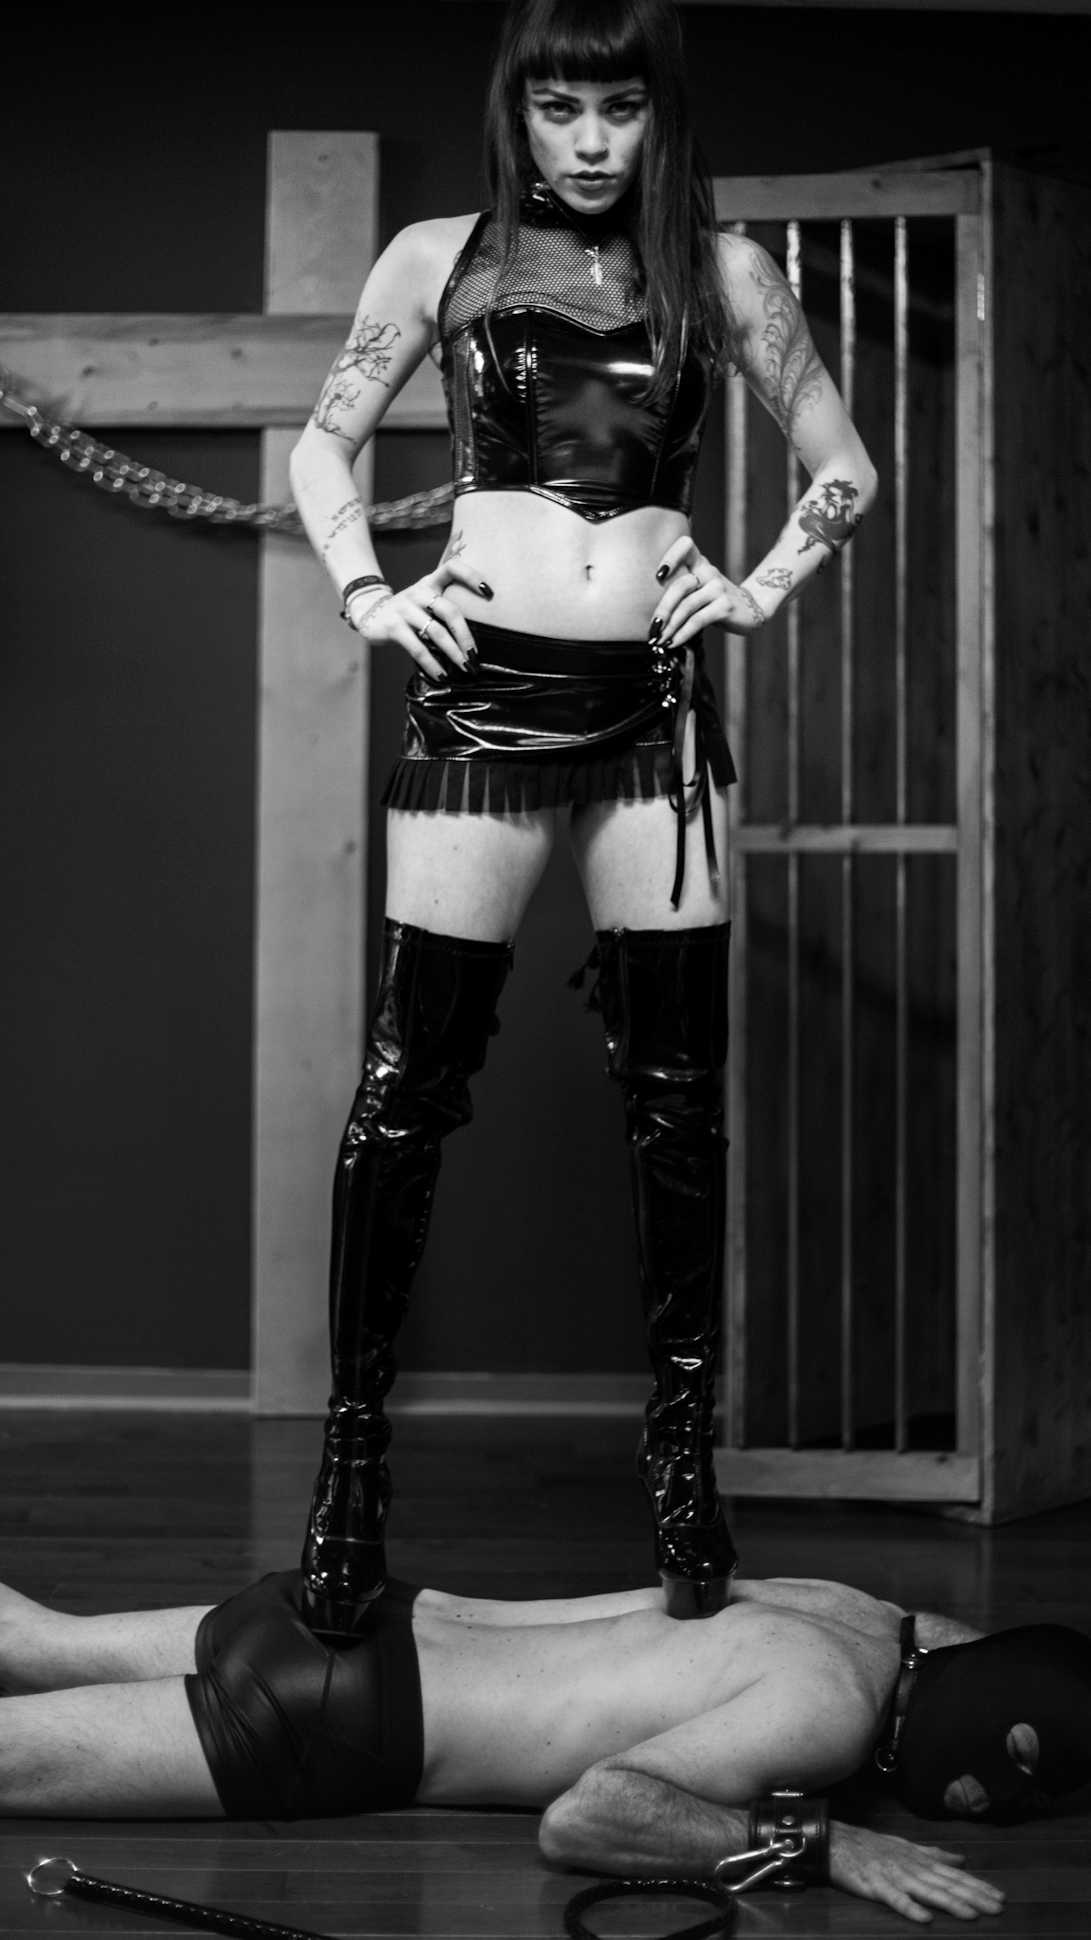 Montreal mistress